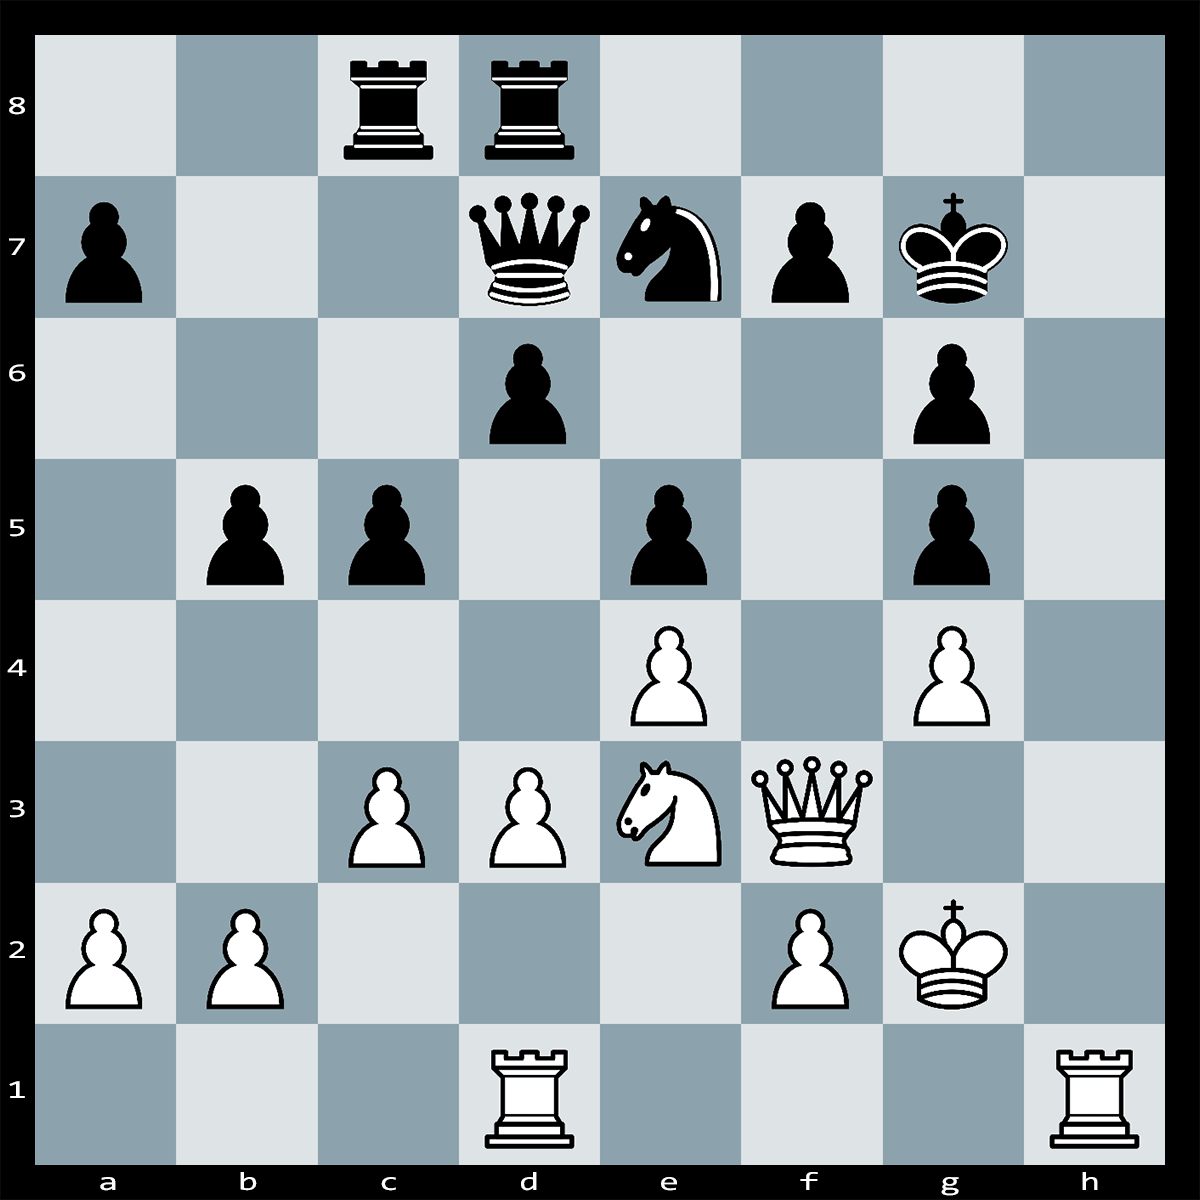 Chess Puzzle #328 | Chess Puzzle for Beginners. It's White to play and checkmate in Three. Difficulty: Easy.